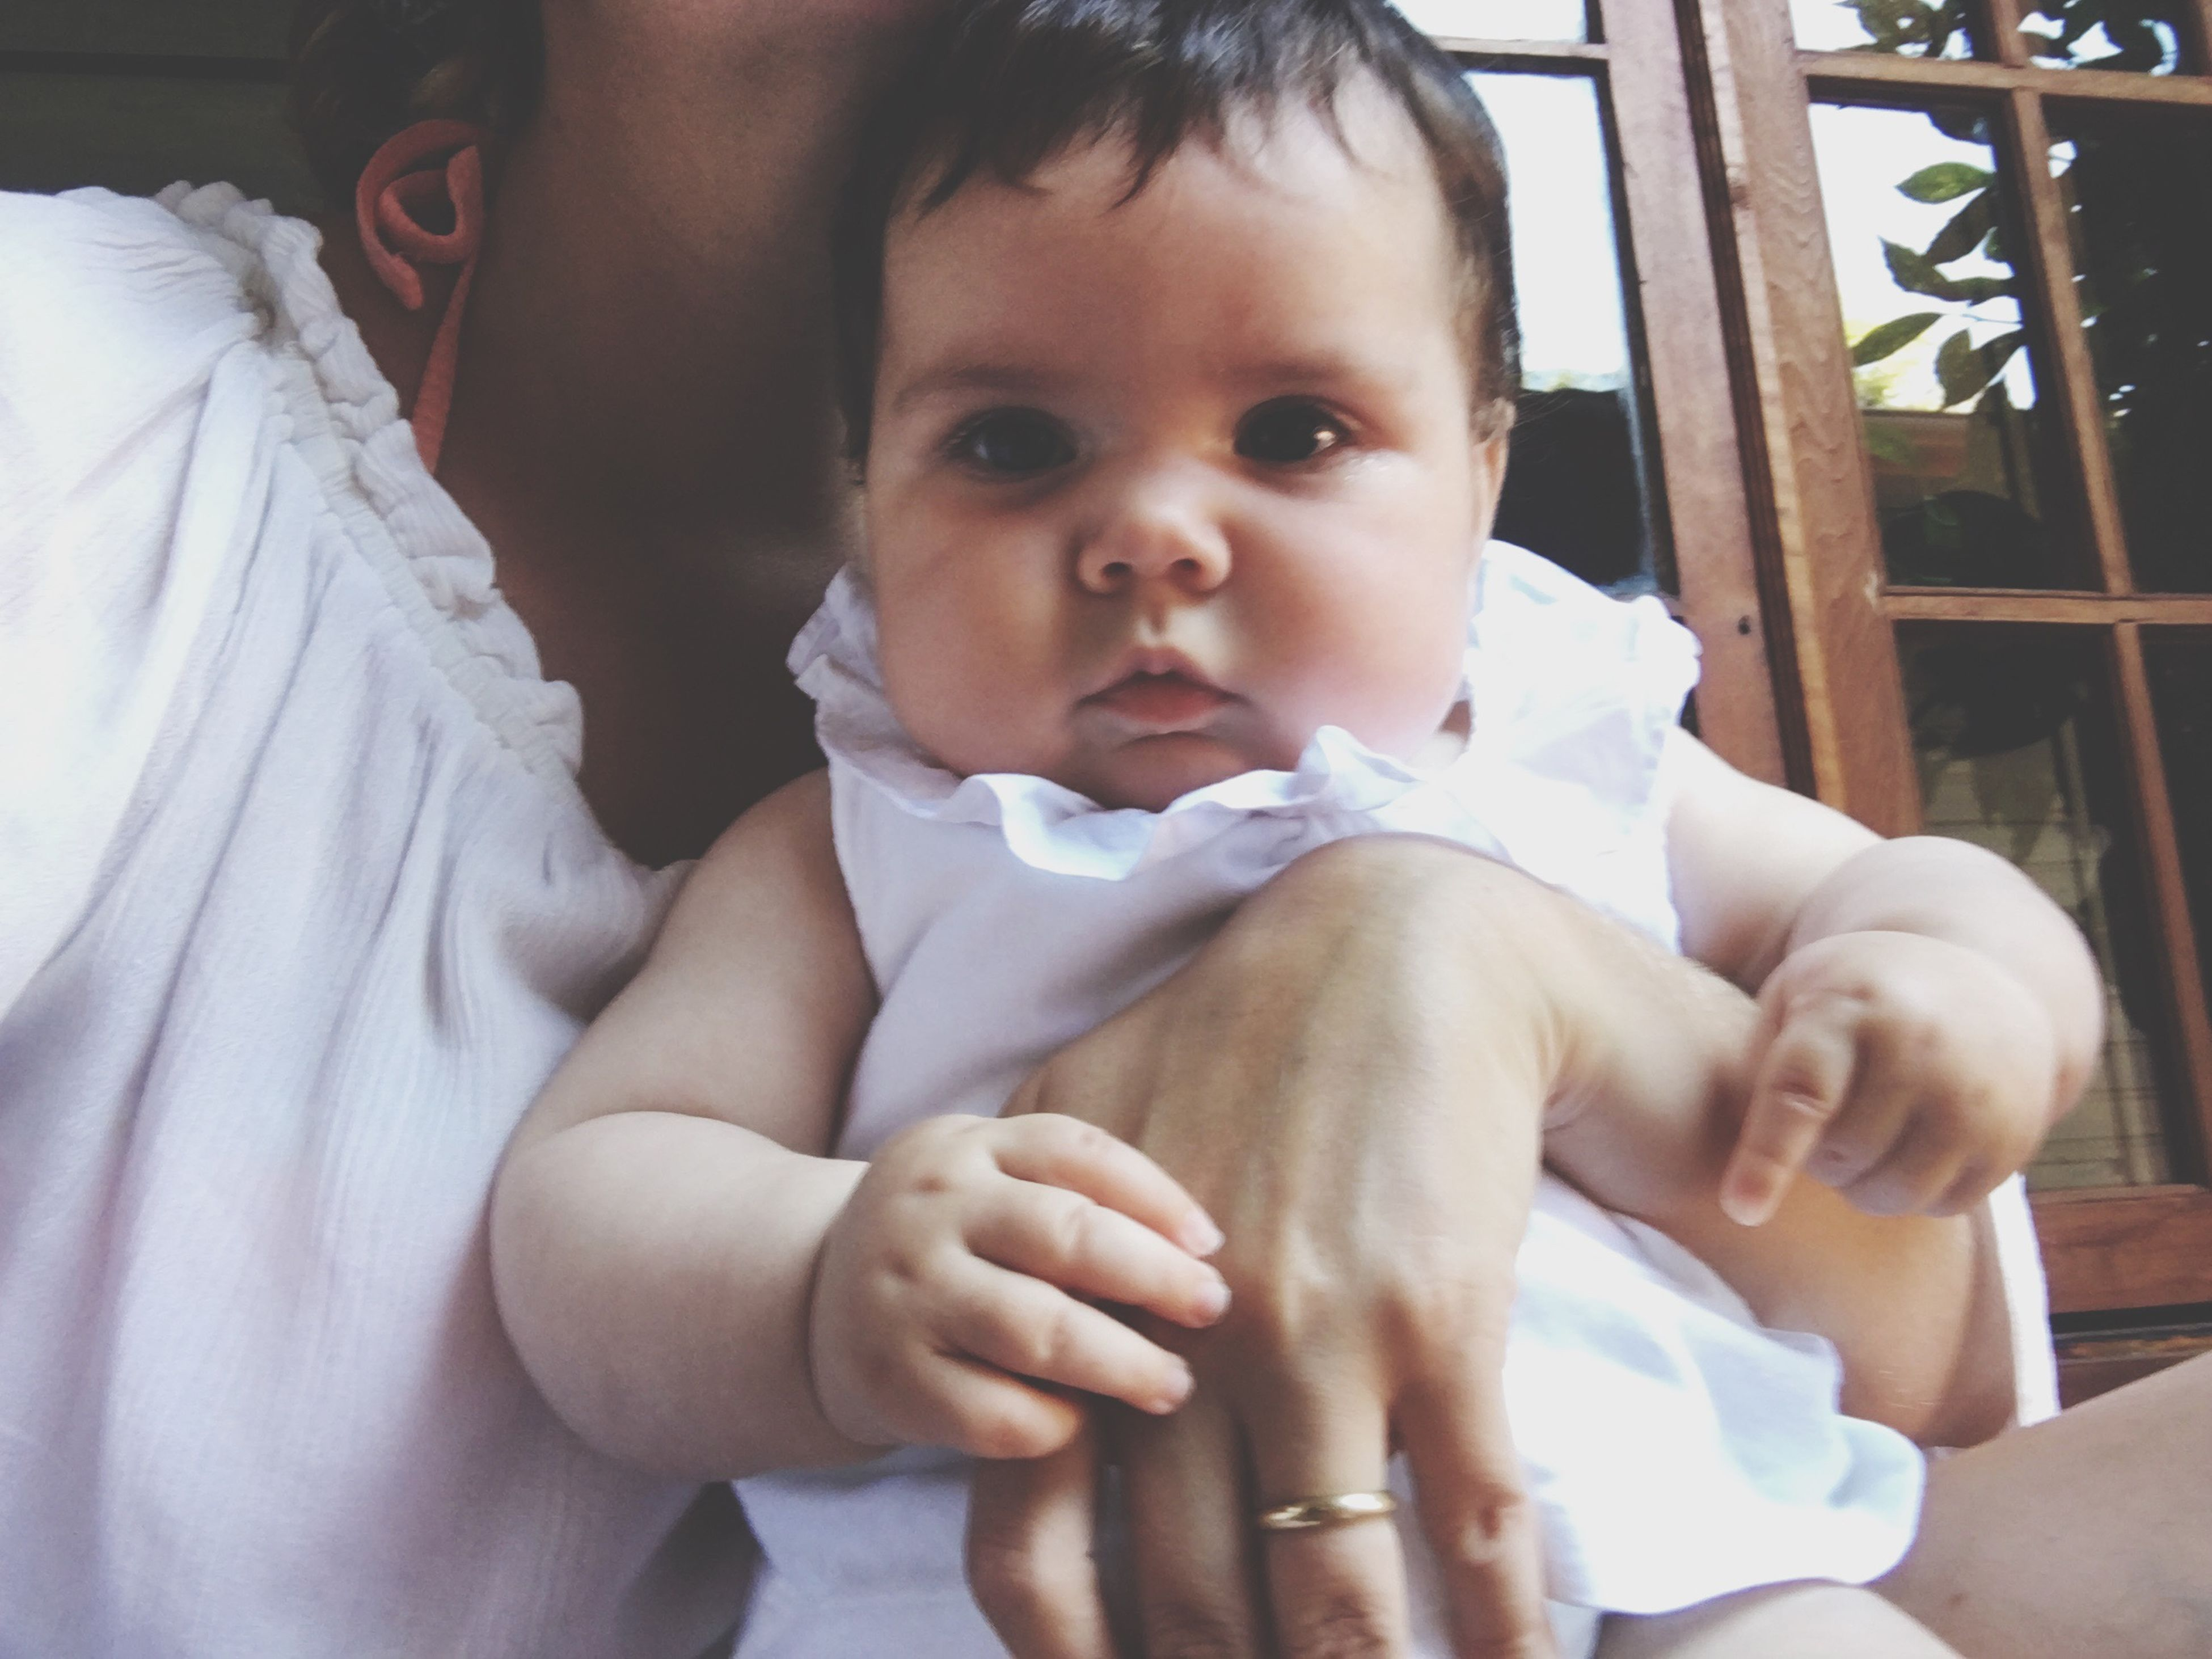 real people, love, baby, two people, babyhood, bonding, indoors, childhood, innocence, lifestyles, togetherness, leisure activity, care, day, newborn, close-up, young women, hugging, human hand